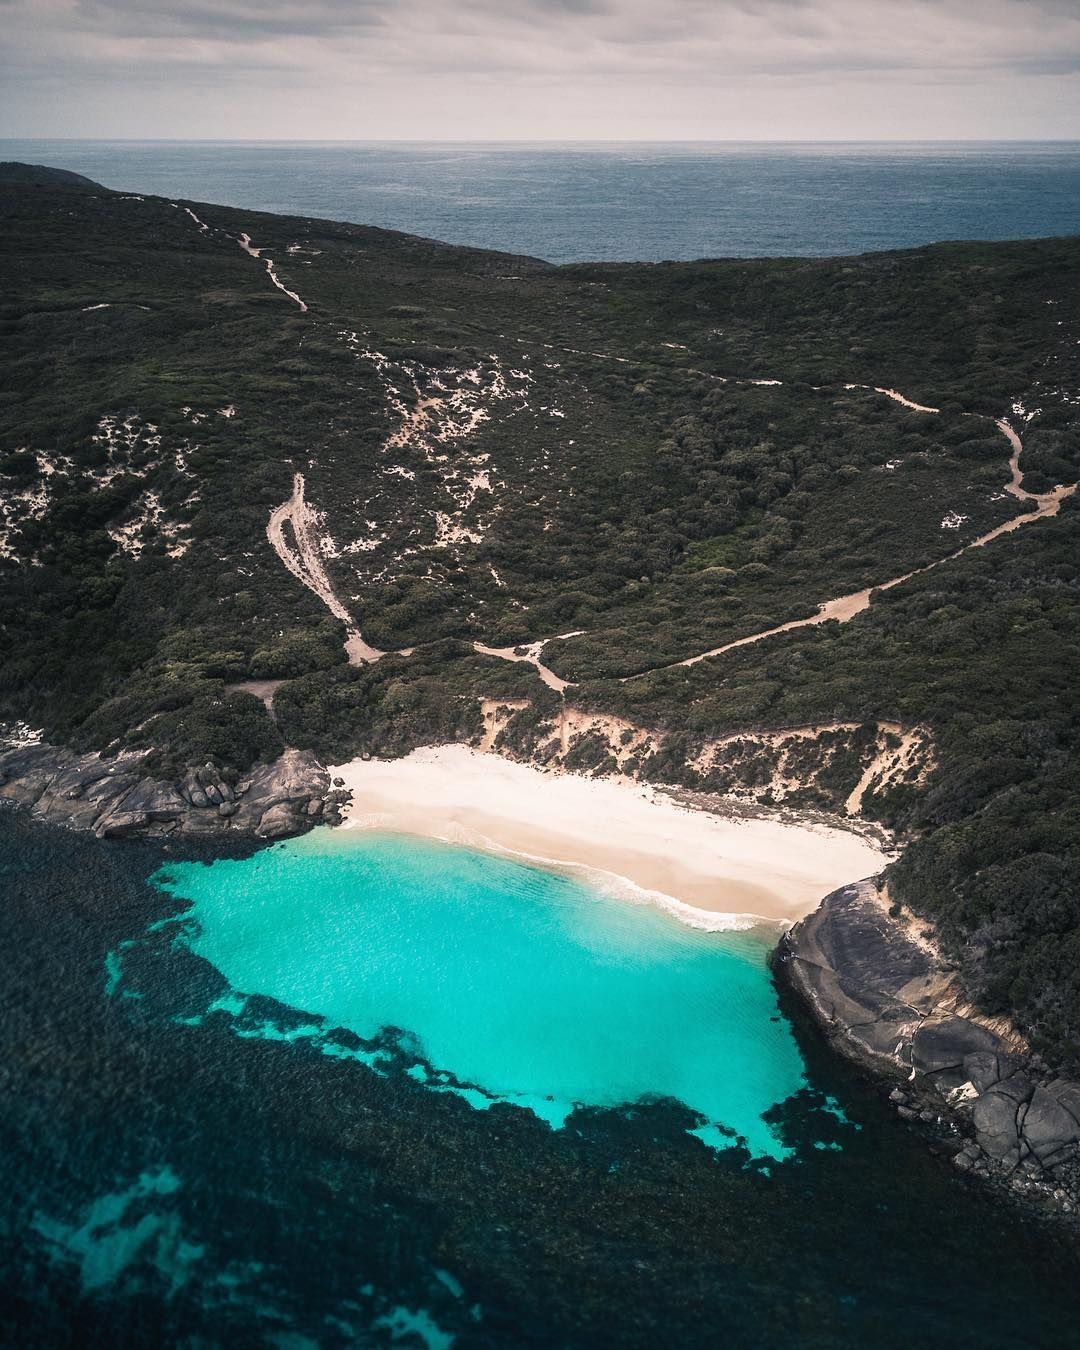 Western Australia From Above: Drone Photography by Phil de Glanville #photography #Australia #dronestagram Check more at https://photogrist.com/western-australia-phil-de-glanville/